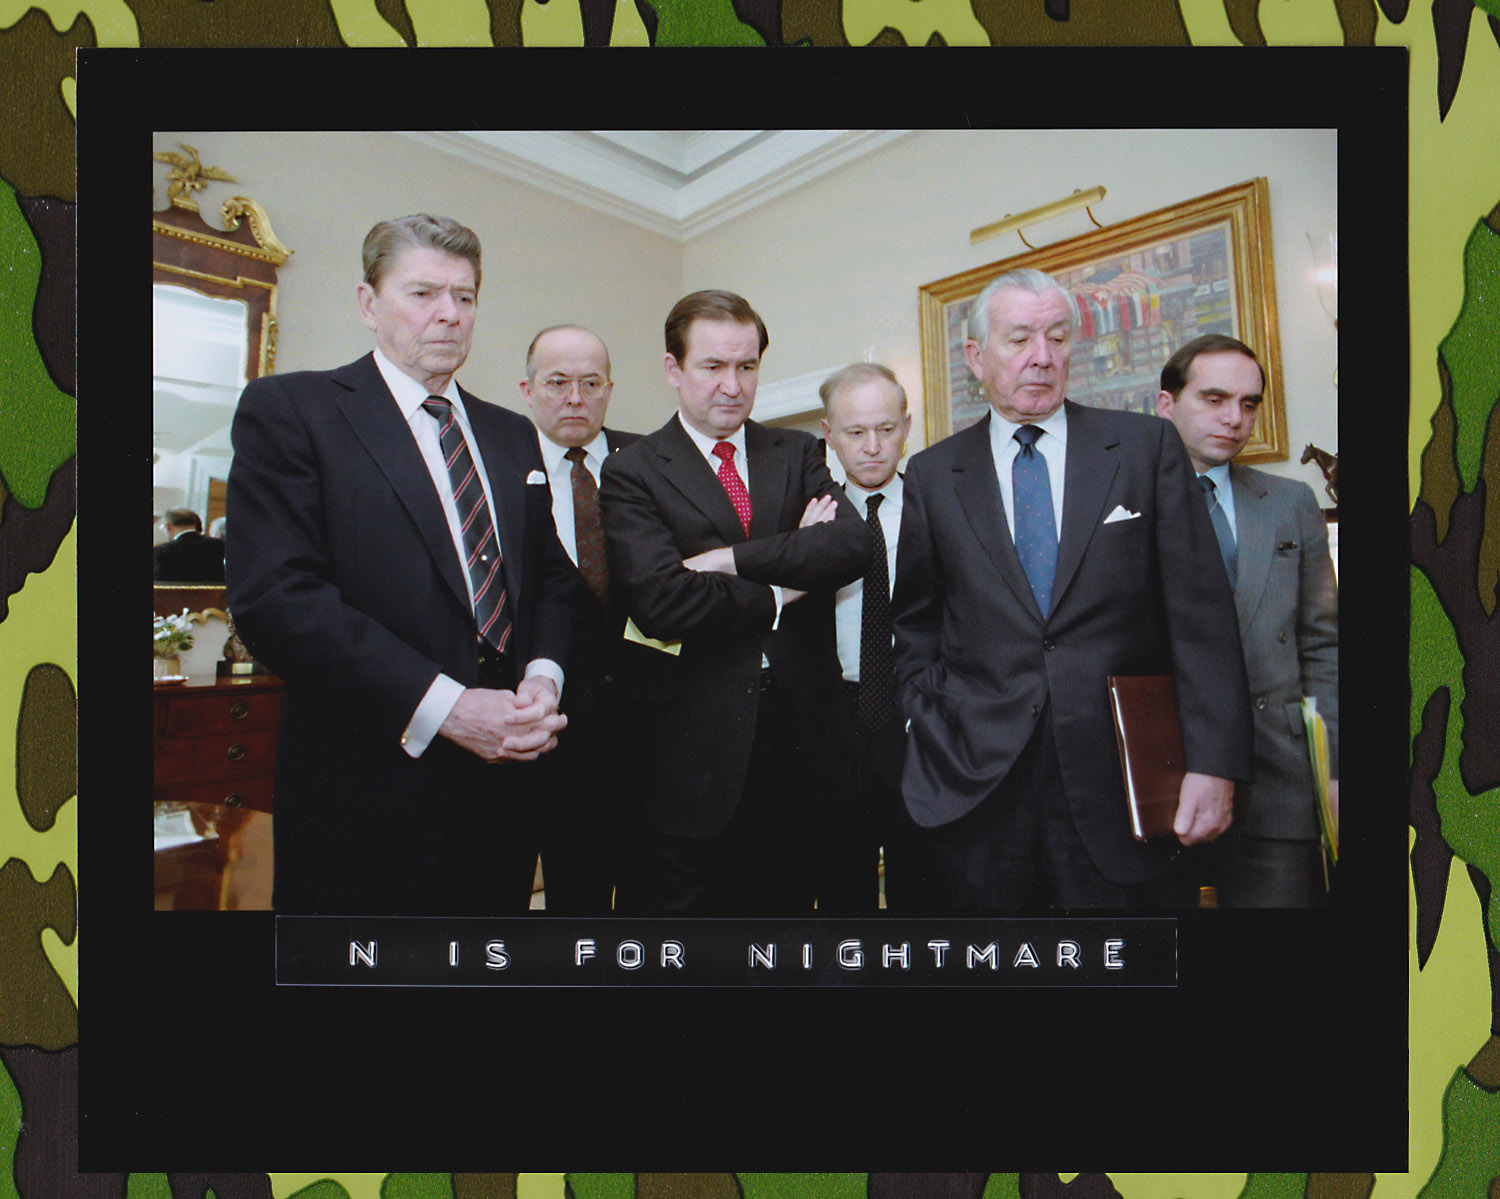 President Reagan and his staff watch the television in the wake of the Challenger explosion, waiting for news and watching replays of the disaster. Left to right: Ronald Reagan, James Poindexter, Pat Buchanan, Alfred Kingon, Don Regan, Edward Djerejian. (Photo: Bill Fitzpatrick/Courtesy of the Ronald Reagan Library)